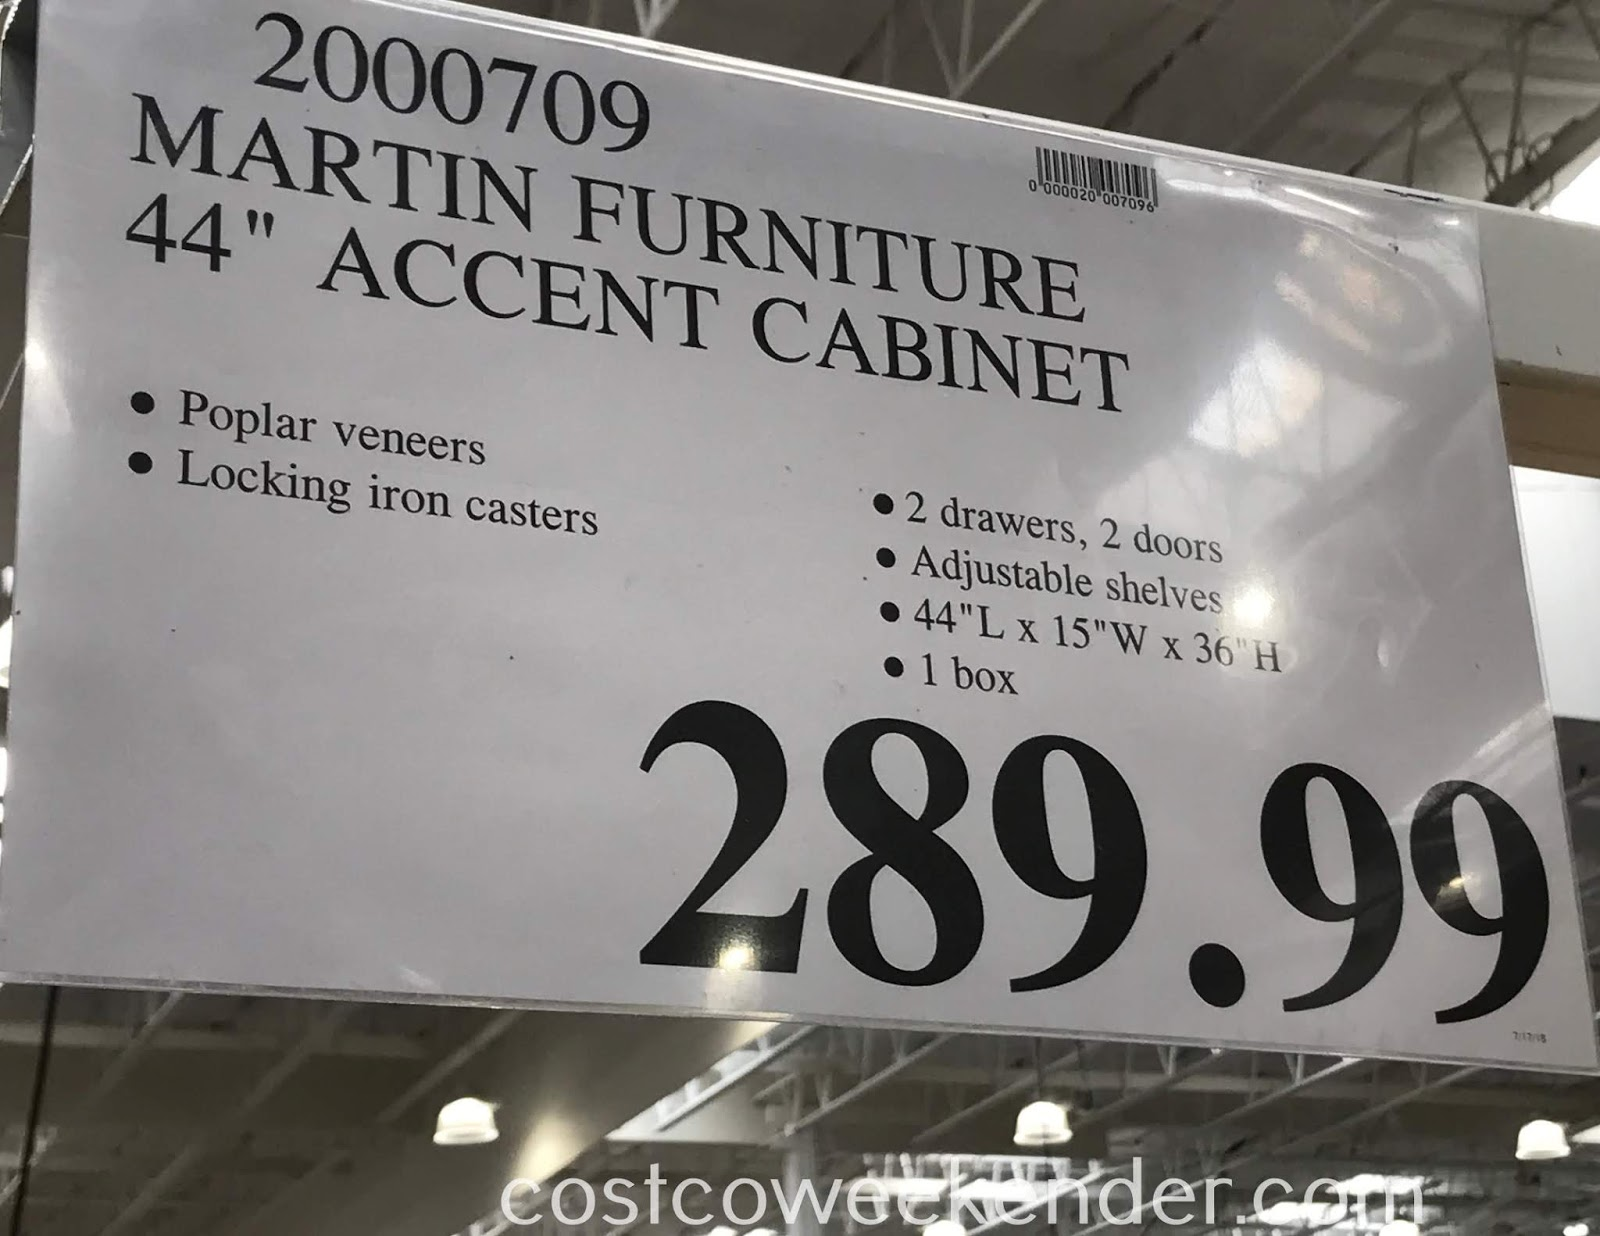 Deal for the Martin Furniture Accent Cabinet at Costco